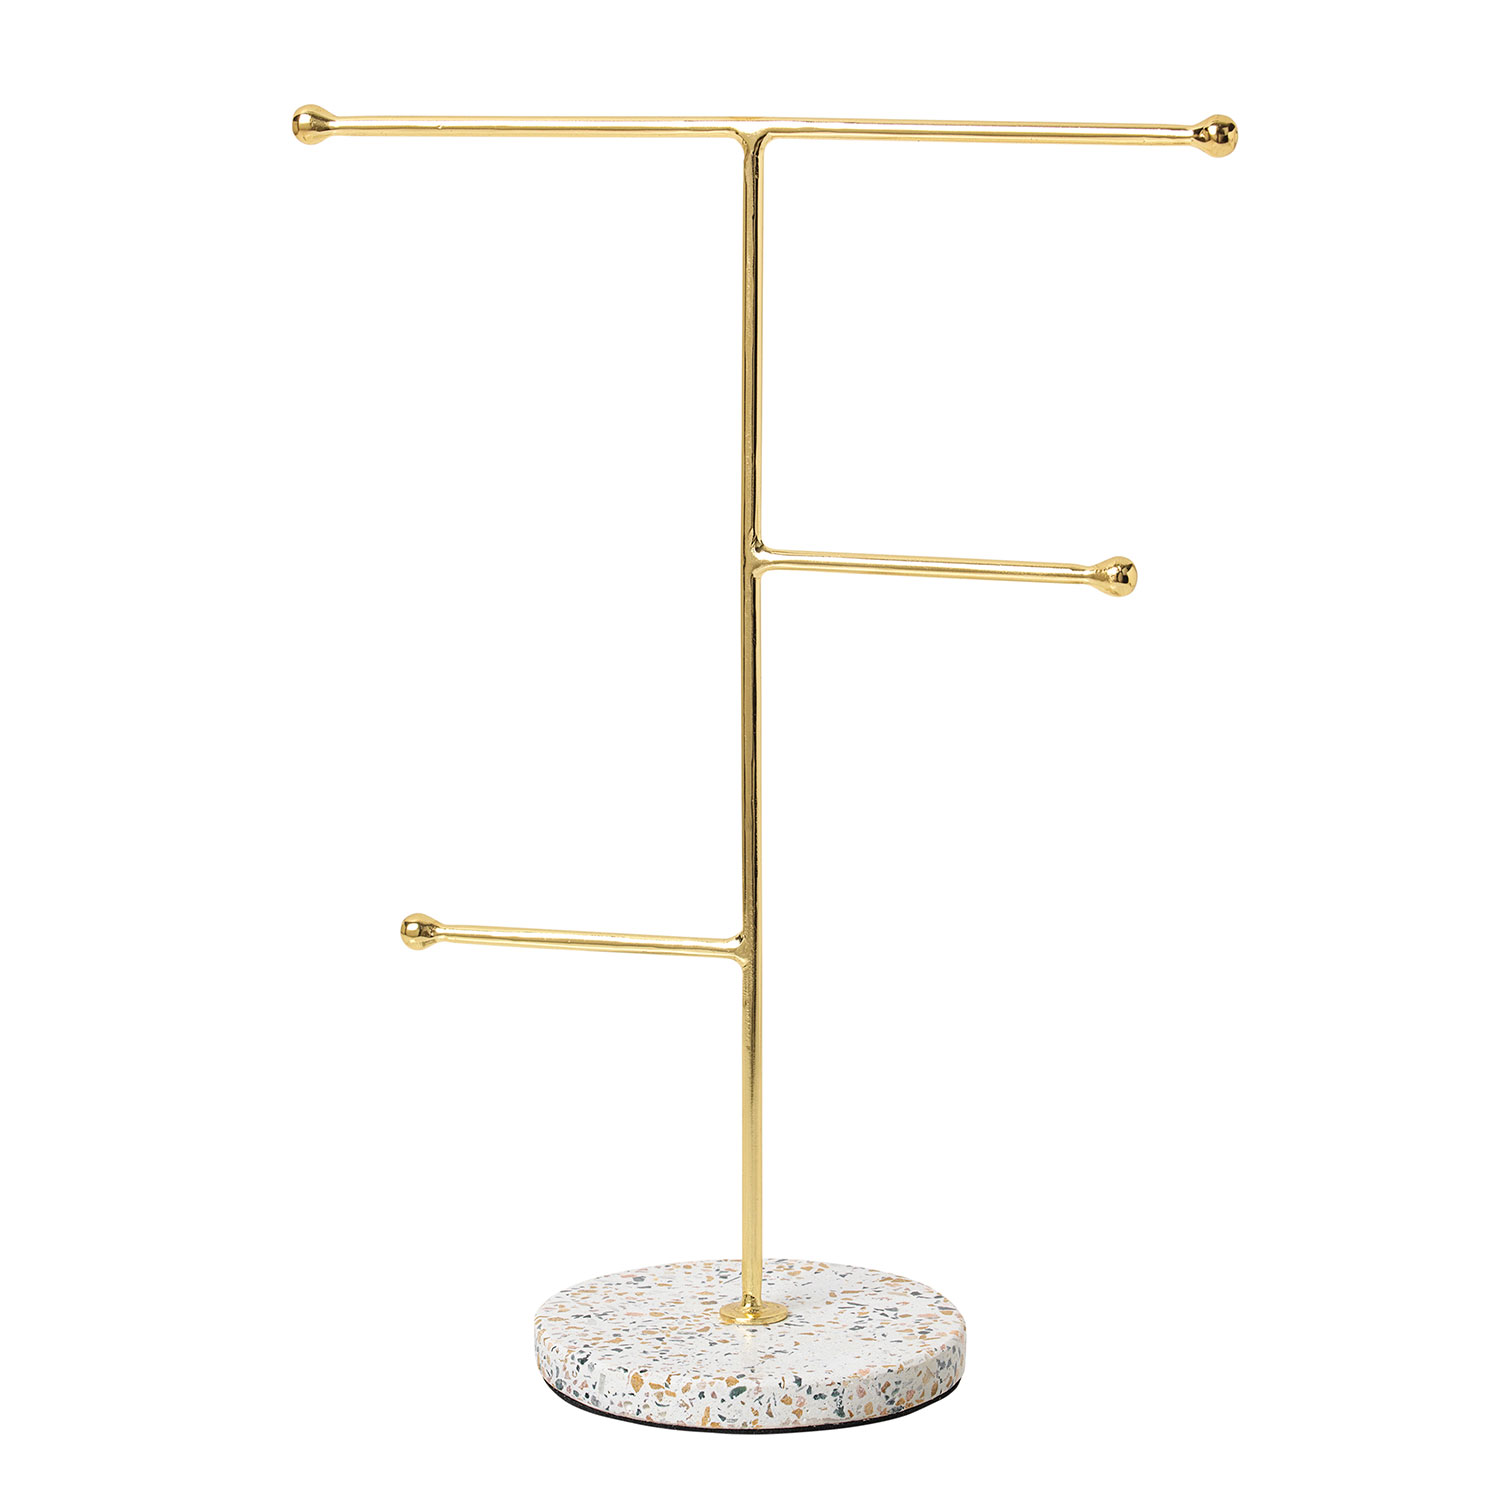 Gull Jewelry Organizer 30x23cm, White/ Brass